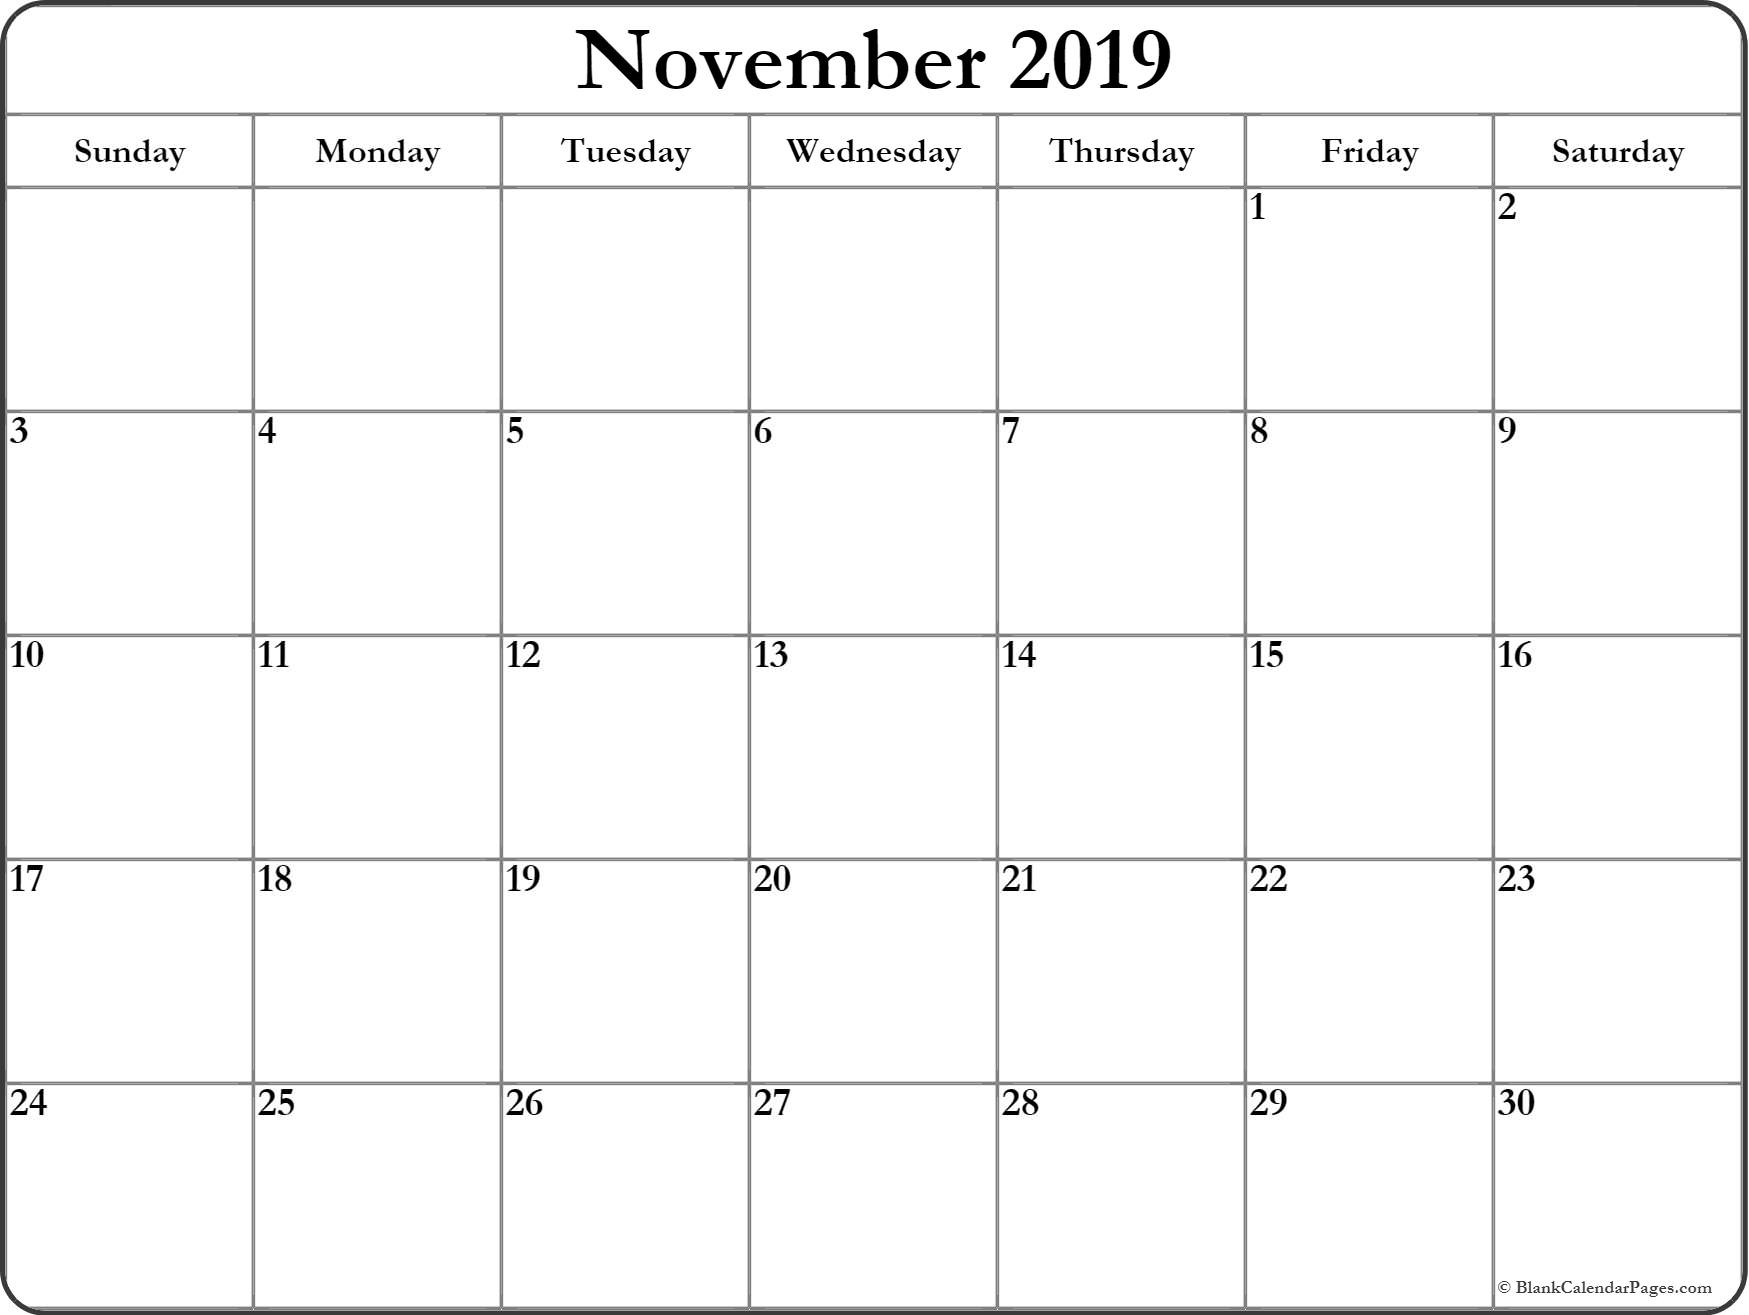 November 2019 Blank Calendar Template  Free Printable intended for Calendar With Blank Squares